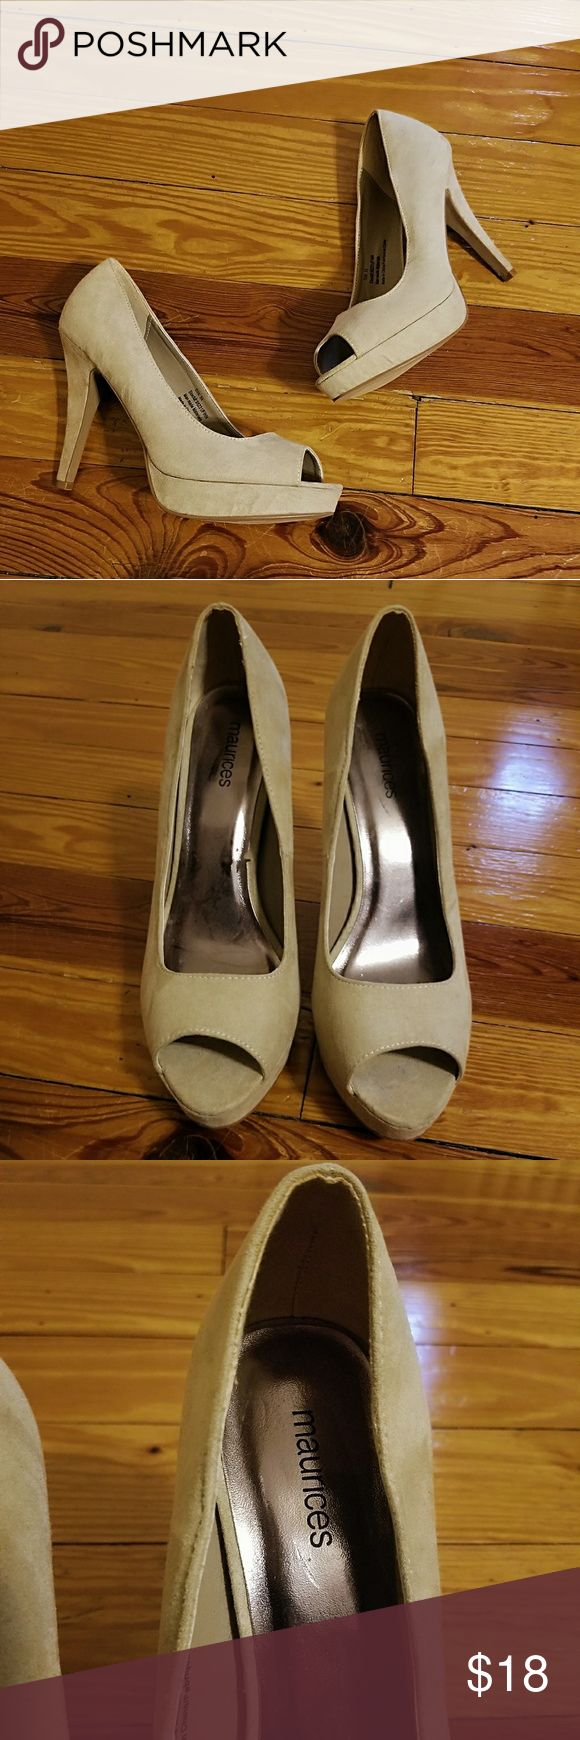 "Maurices Platform Peep-toe Heeles Beautiful faux suede tan peep-toe platform heels by Maurice, look almost new heel 4.5"" size 9.5 Maurices Shoes"